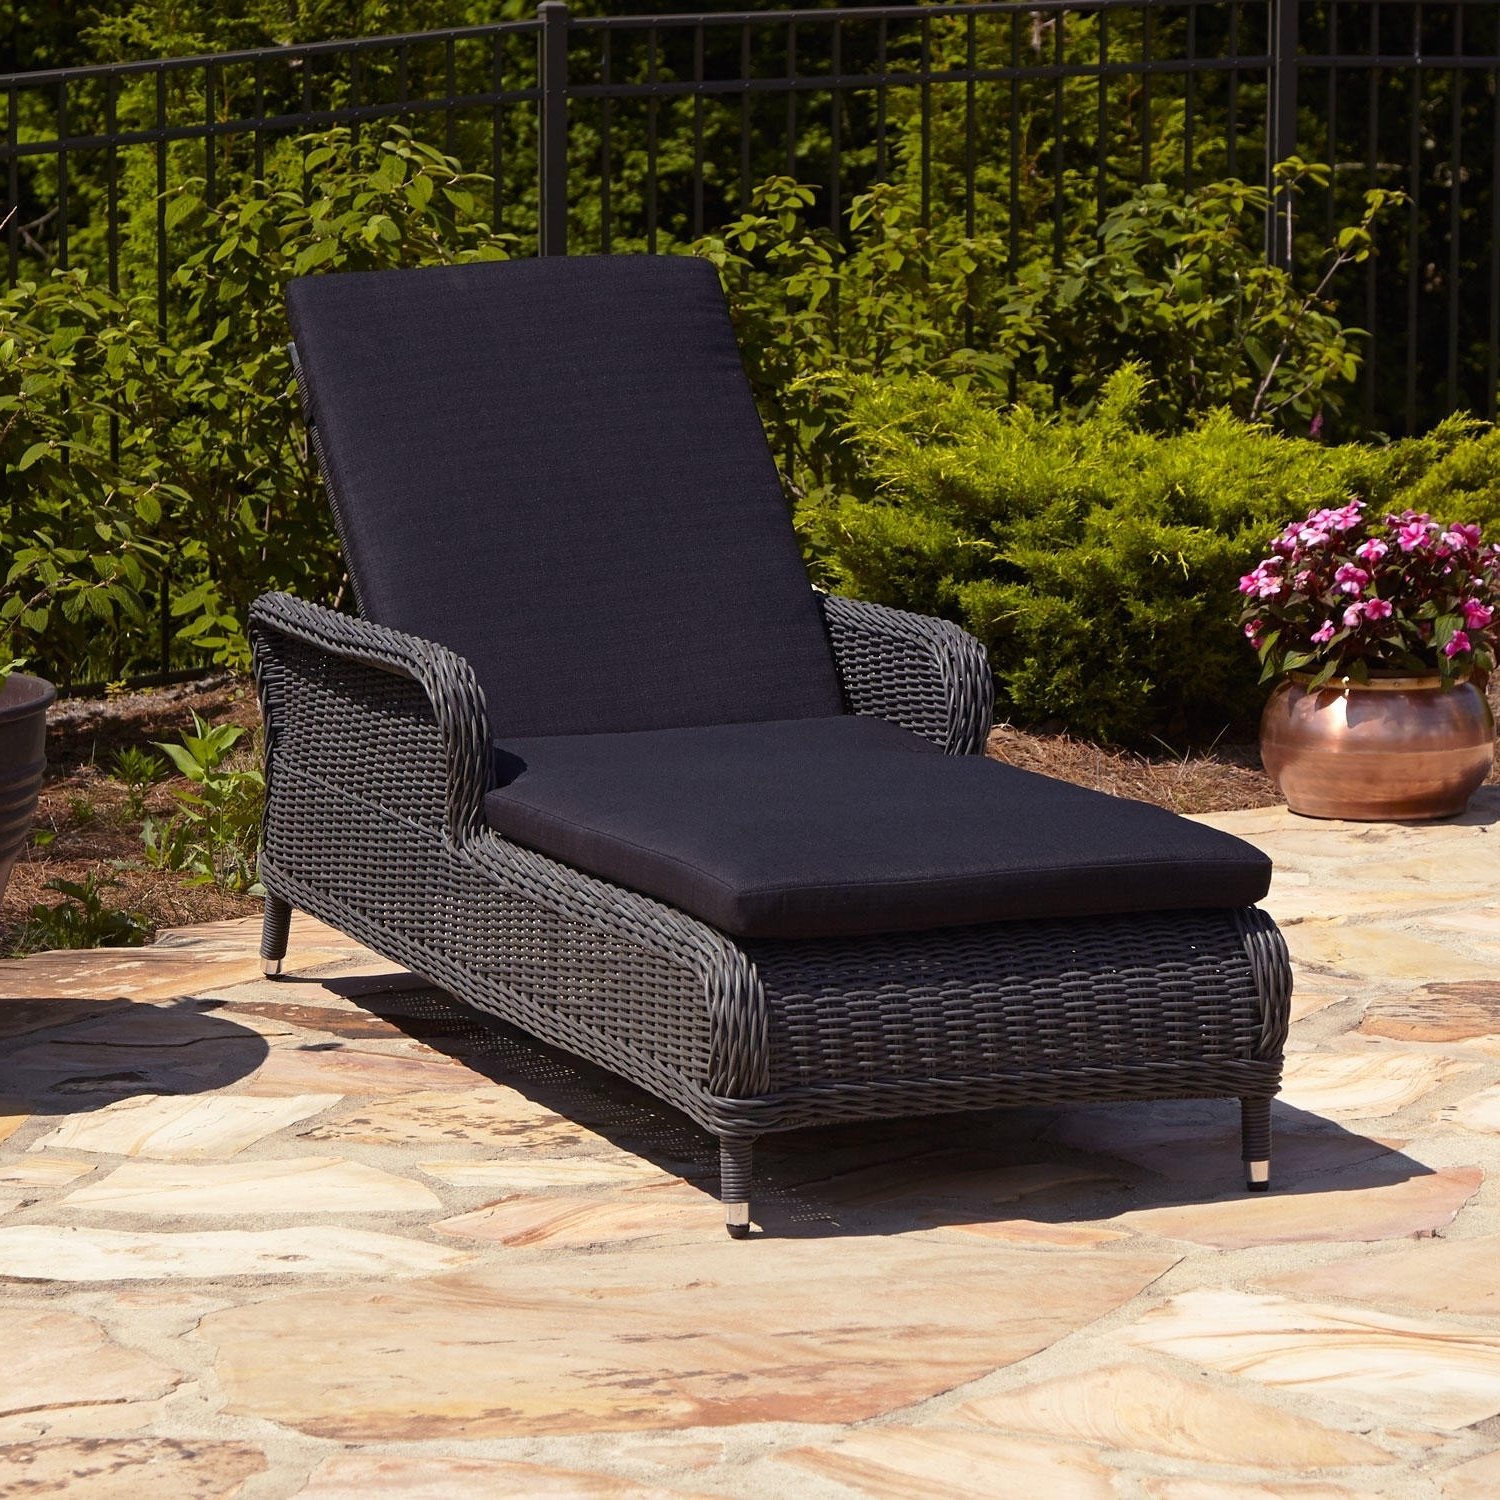 Chaise Lounge Chair Outdoor Cushions Inside Widely Used Convertible Chair : Outdoor Cushions High Back Patio Chair (View 6 of 15)